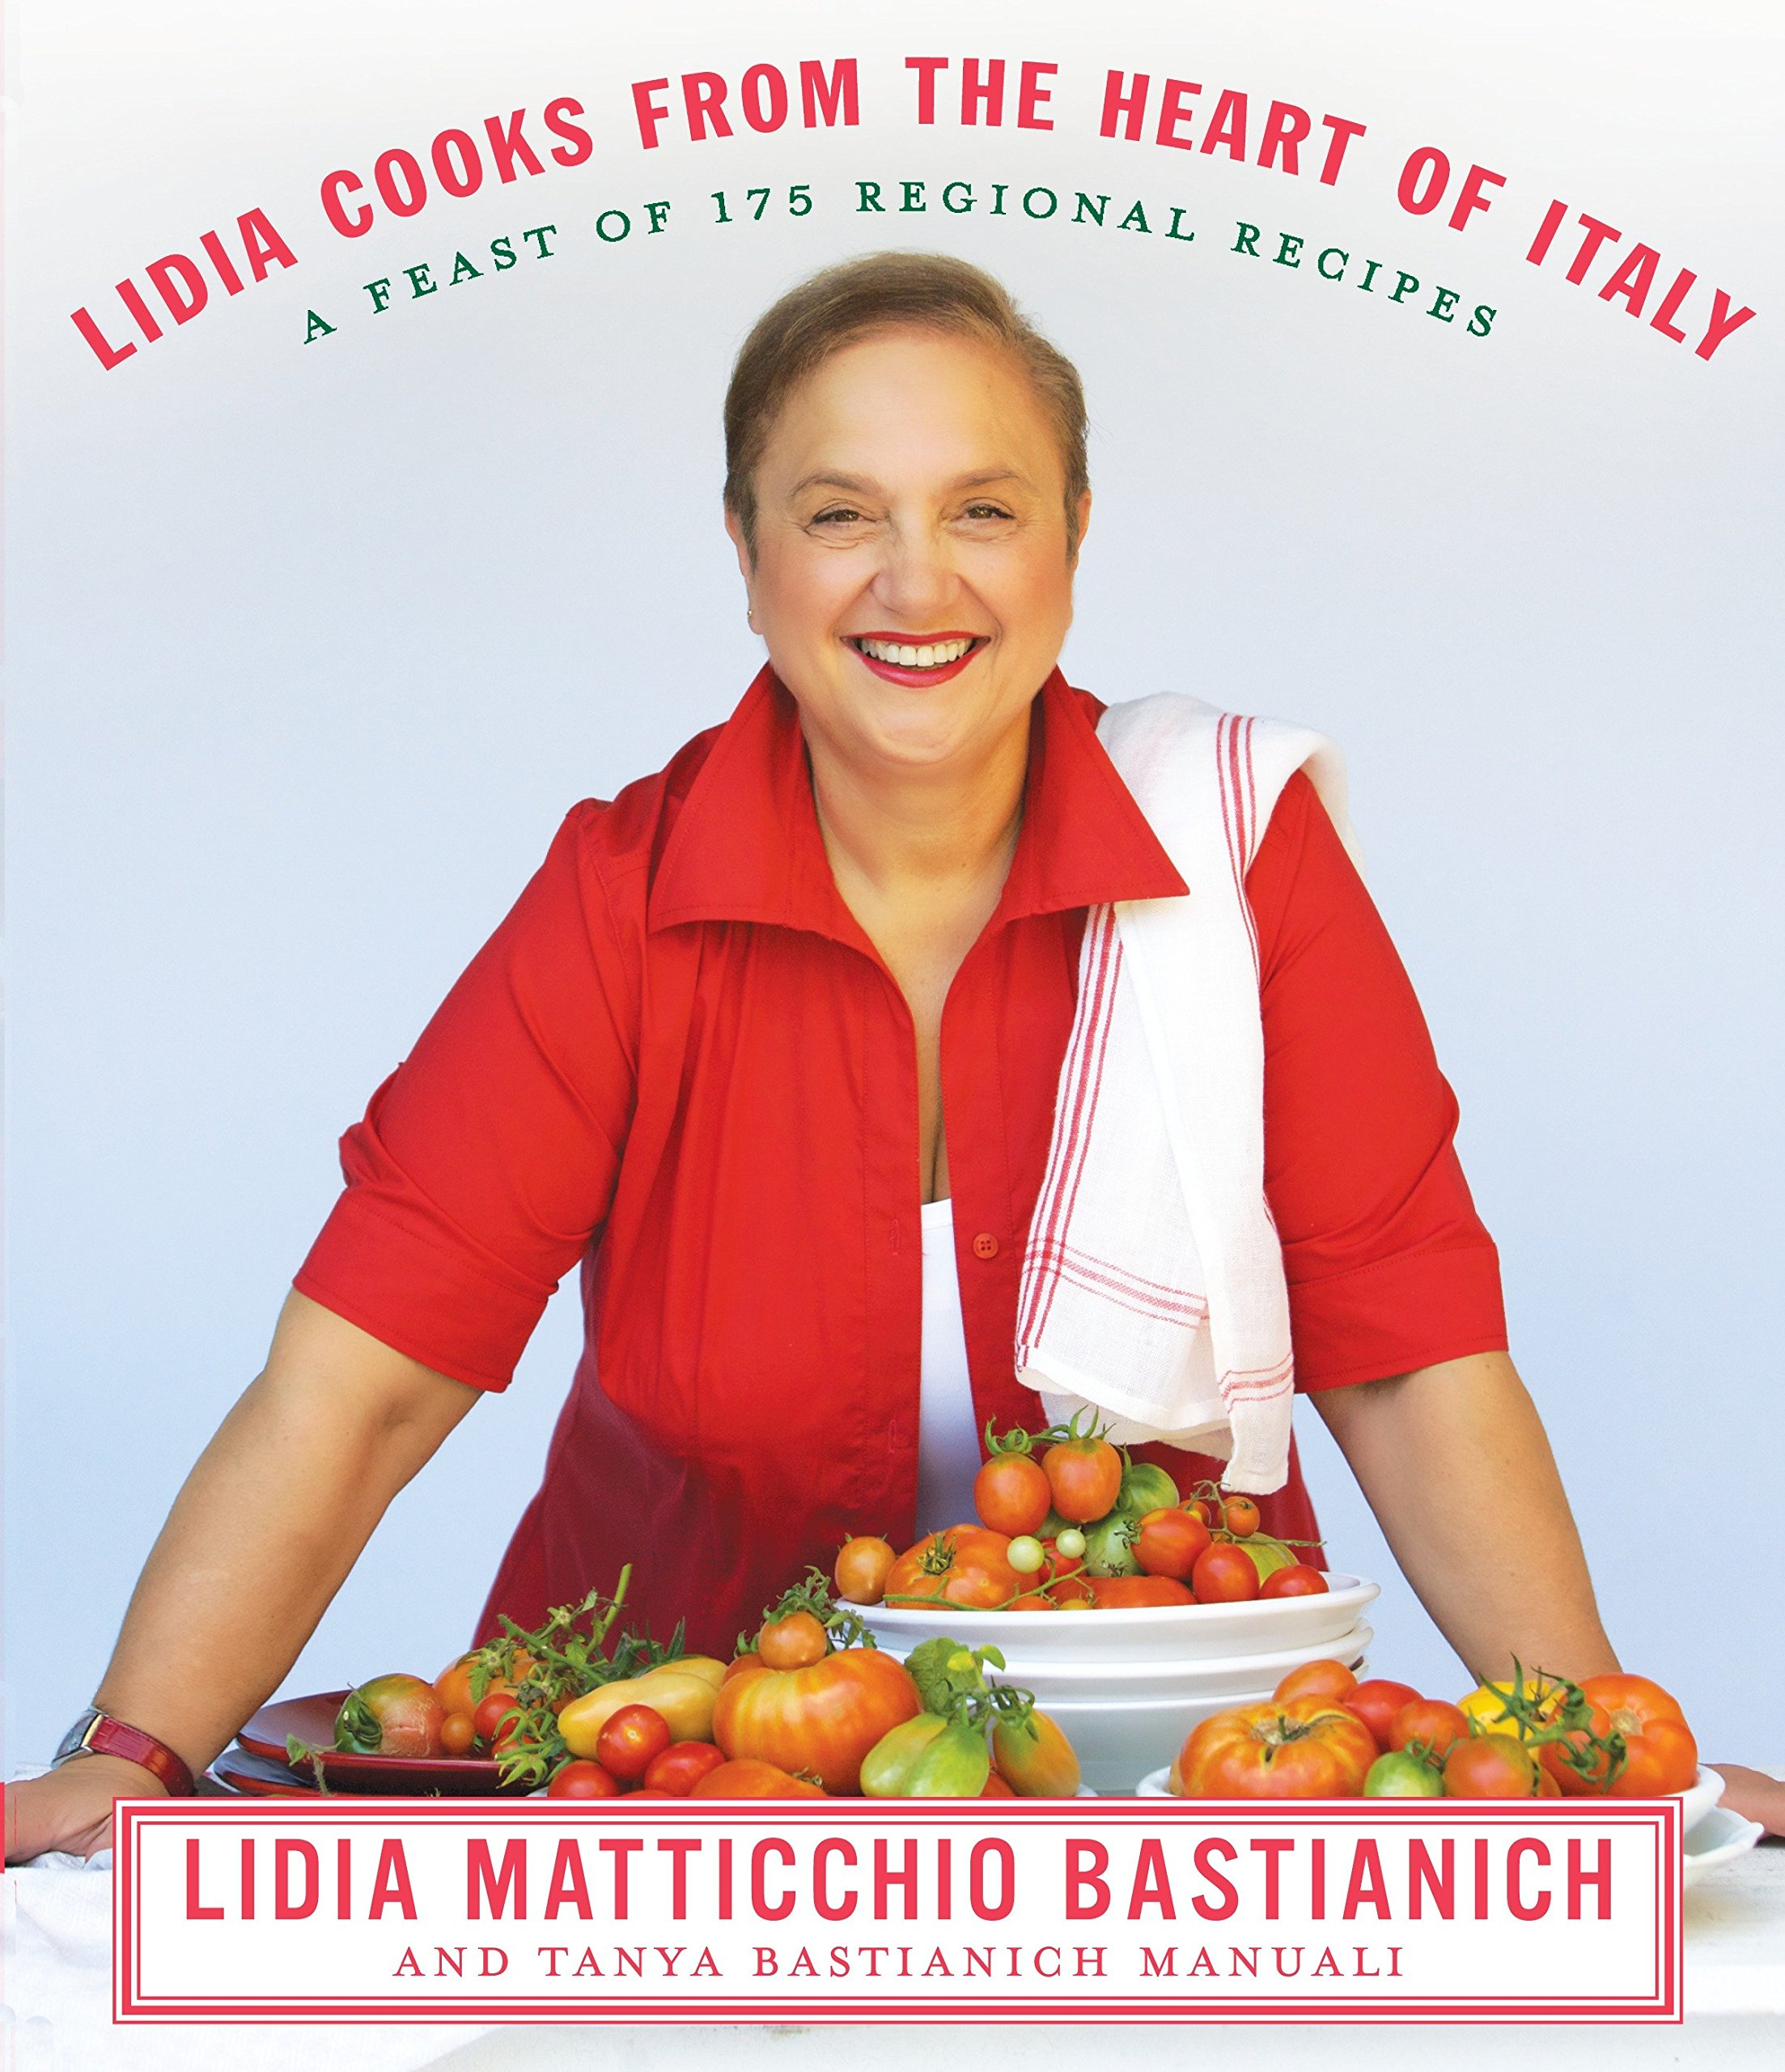 Lidia Cooks from the Heart of Italy: A Feast of 175 Regional Recipes  Hardcover – October 20, 2009